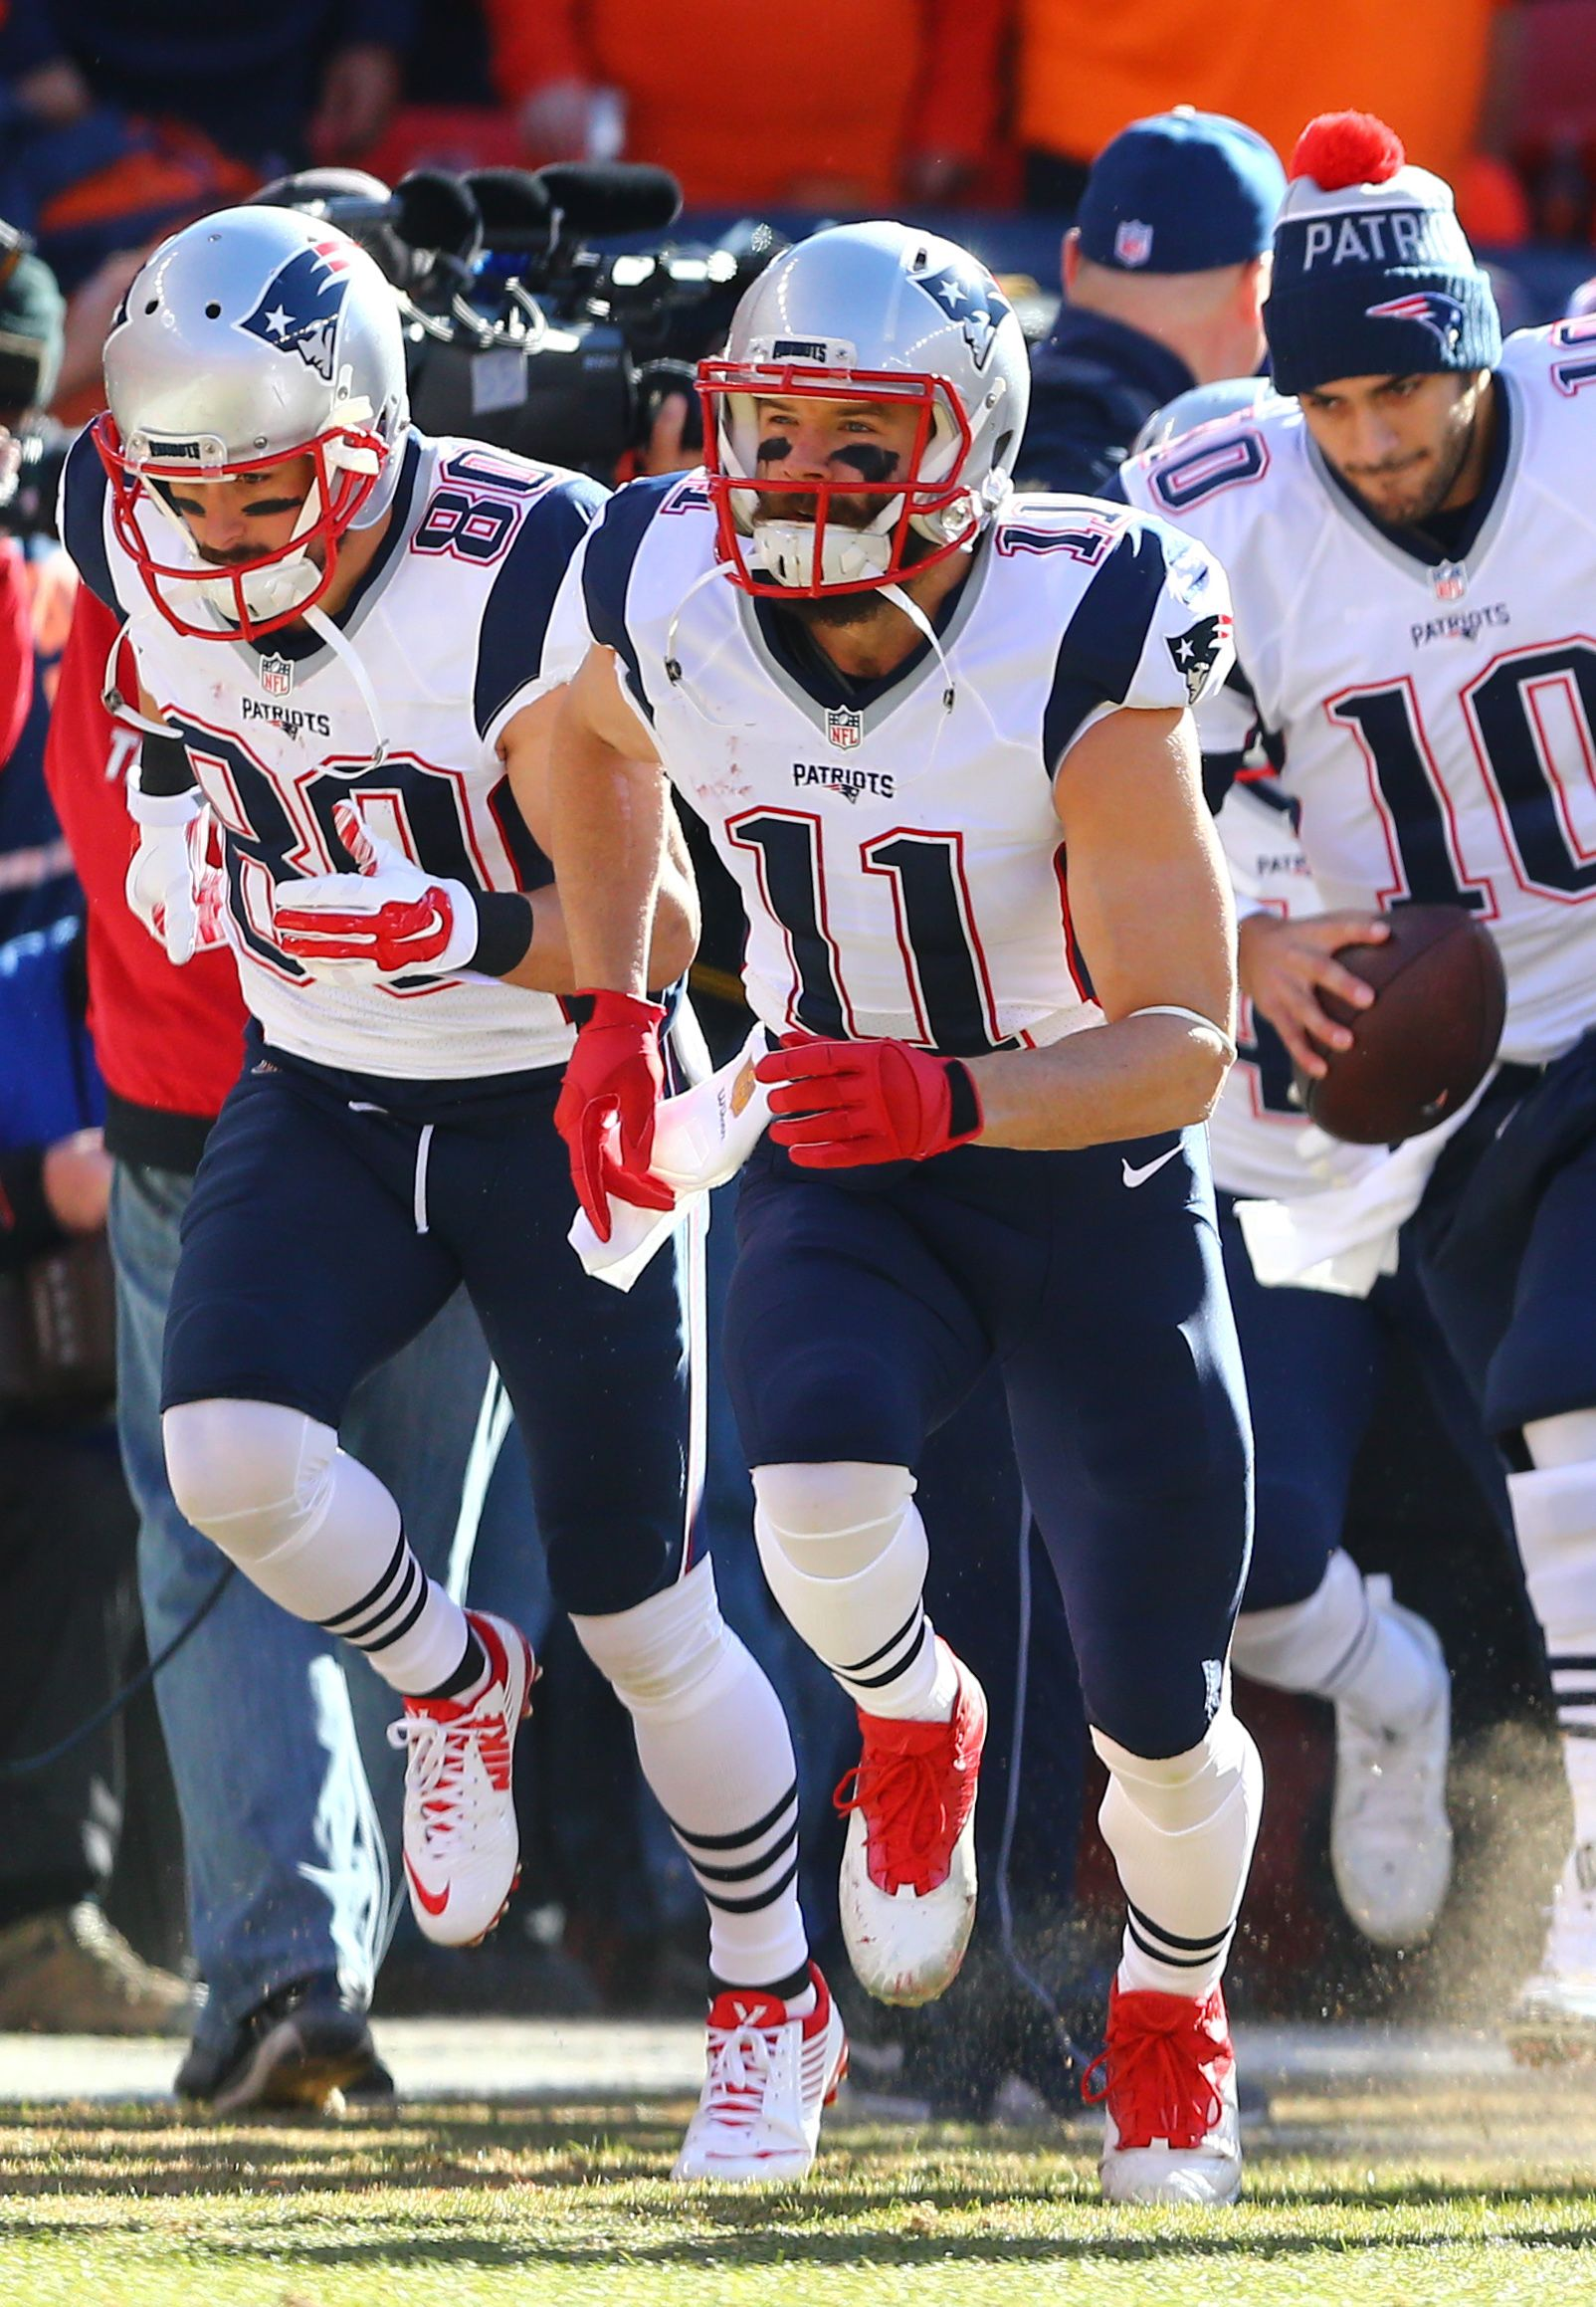 Jan 24 2016 Denver Co Usa New England Patriots Wide Receiver Julian Ed New England Patriots New England Patriots Merchandise New England Patriots Football